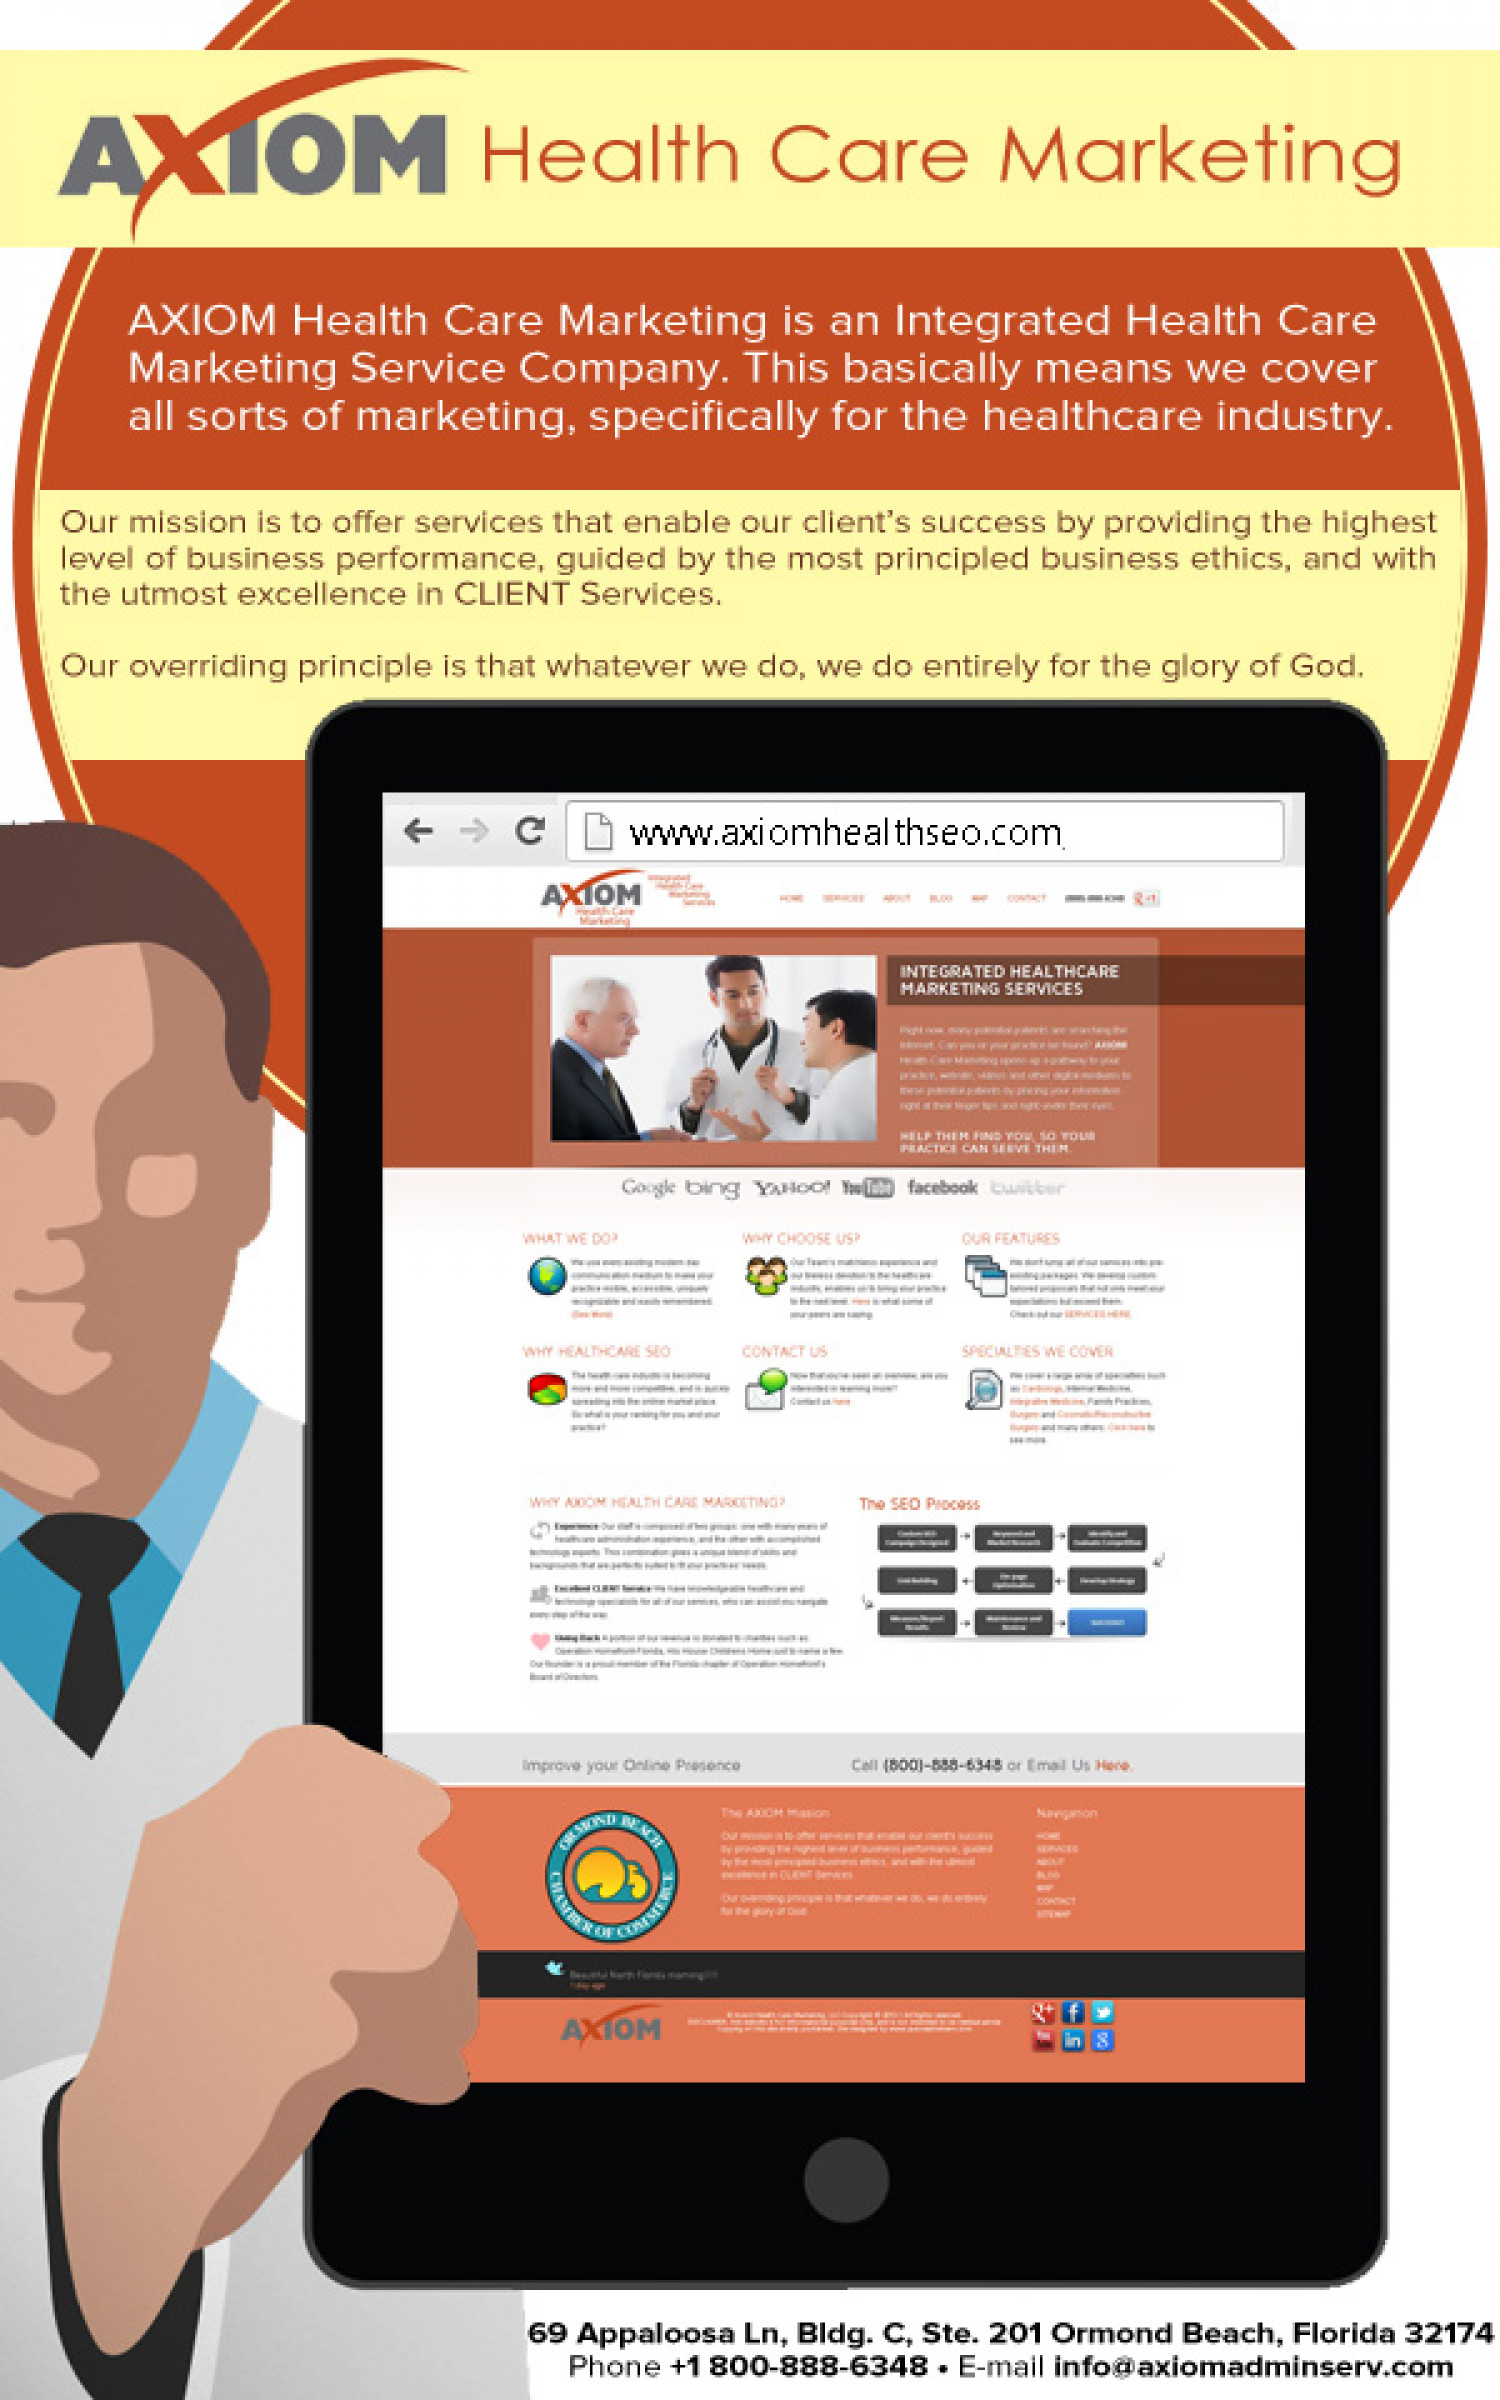 AXIOM Health Care Marketing Infographic